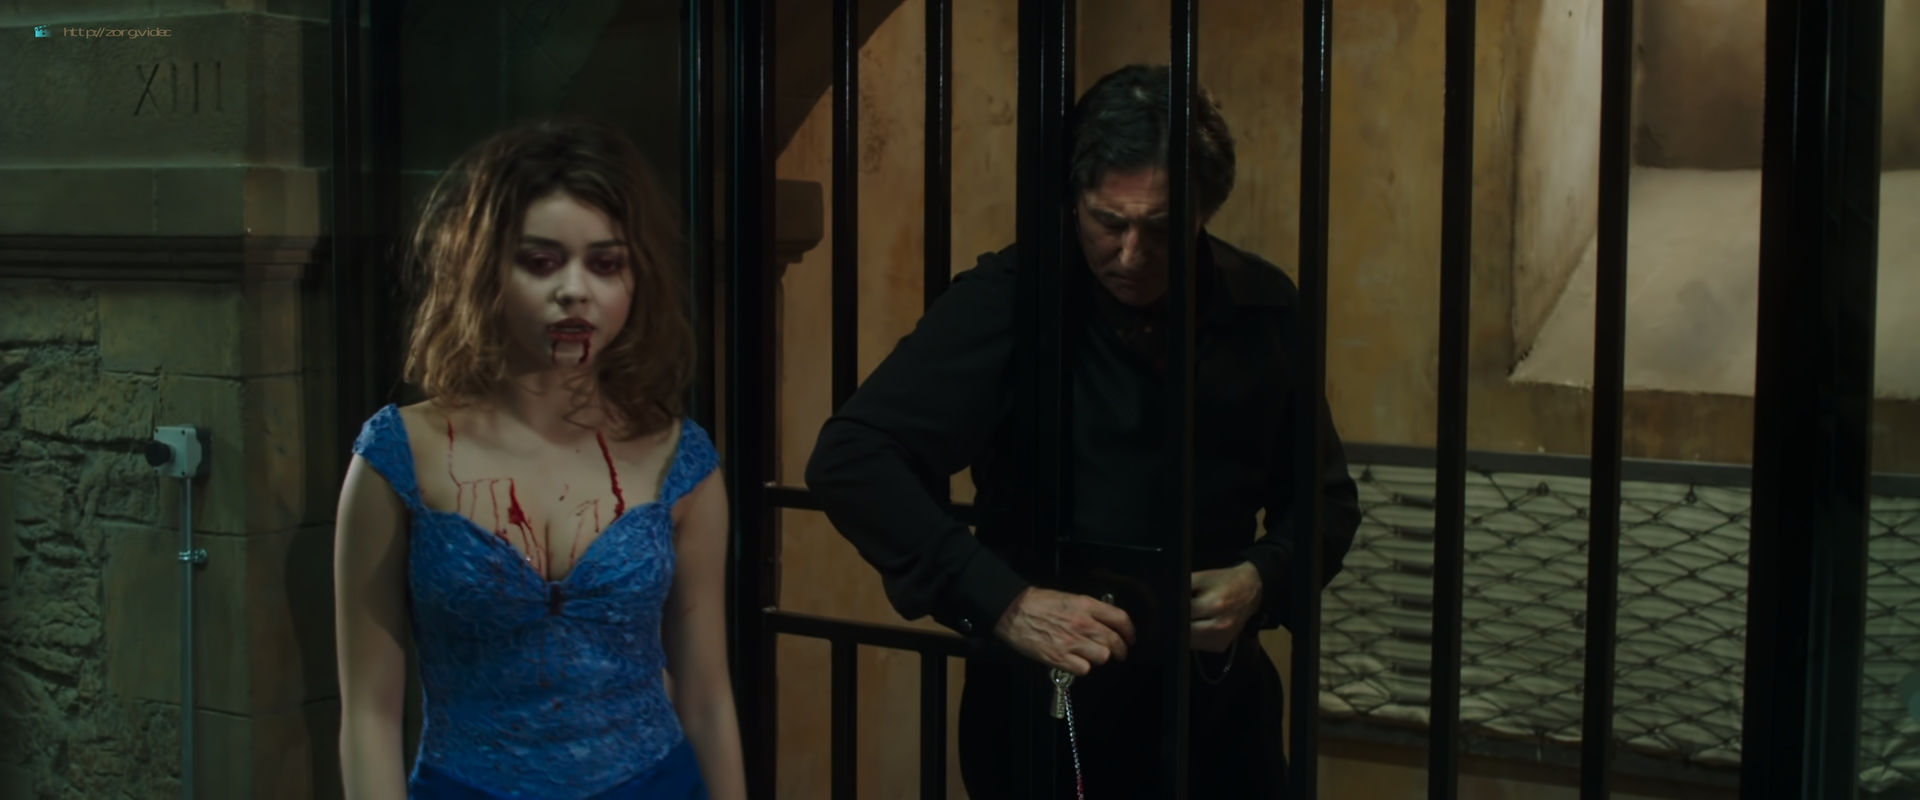 Zoey Deutch hot and sexy in black lingerie and some mild sex in - Vampire Academy (2014) HD 1080p BluRay (3)